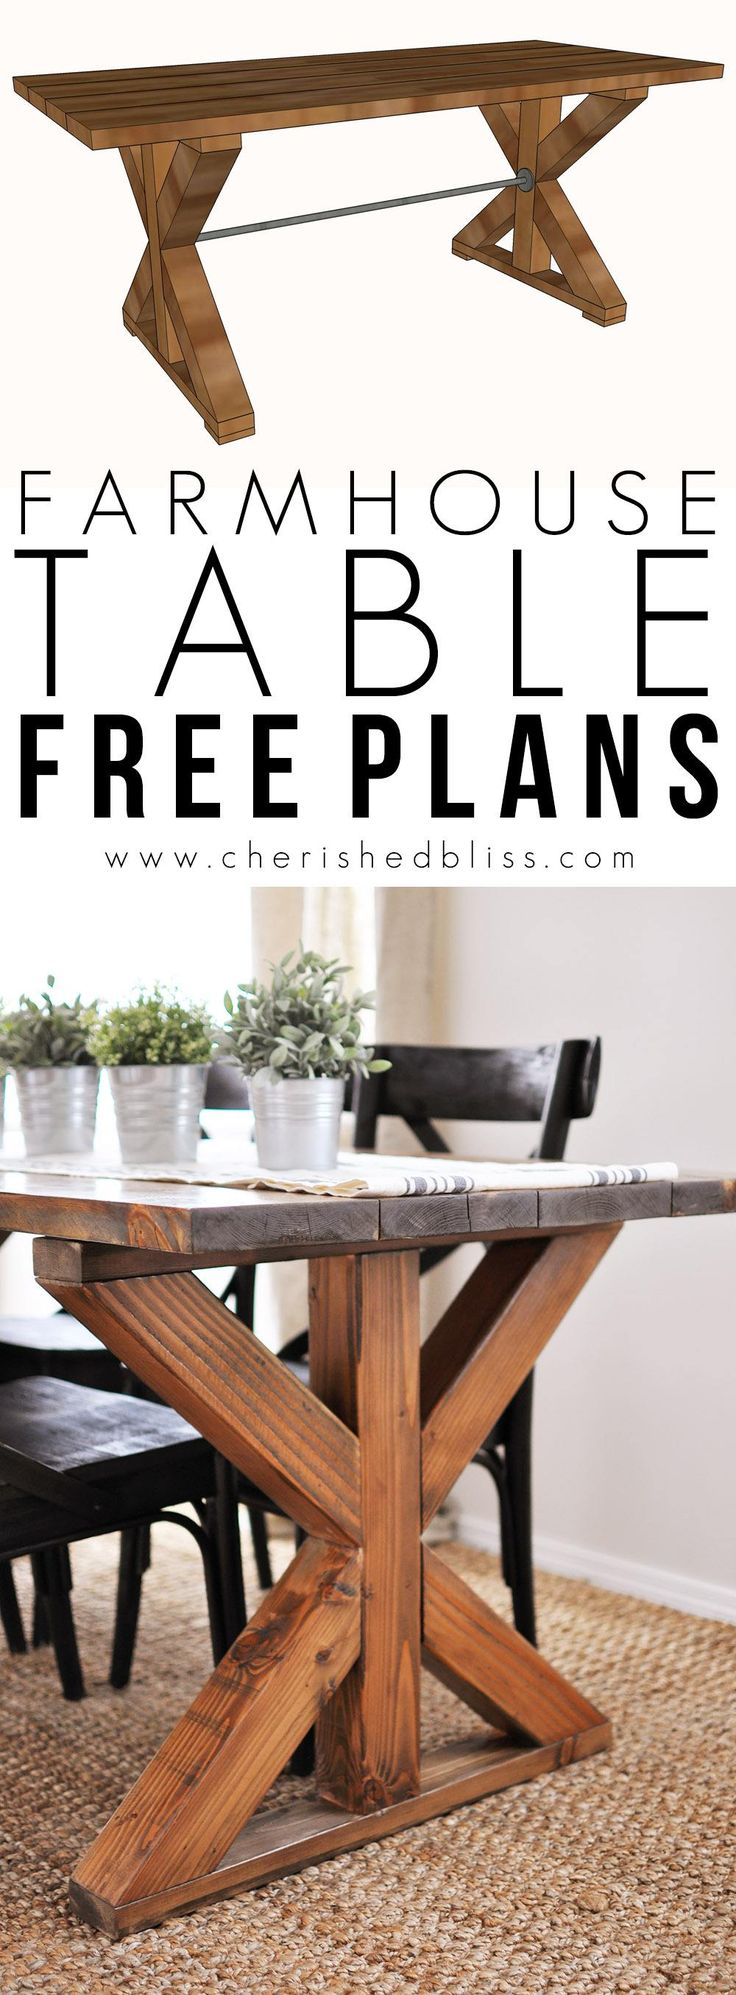 DIY Farmhouse Table With FREE Plans This Easy To Build Is The Perfect Addition Any Dining Or Breakfast Room Its Industrial Touches